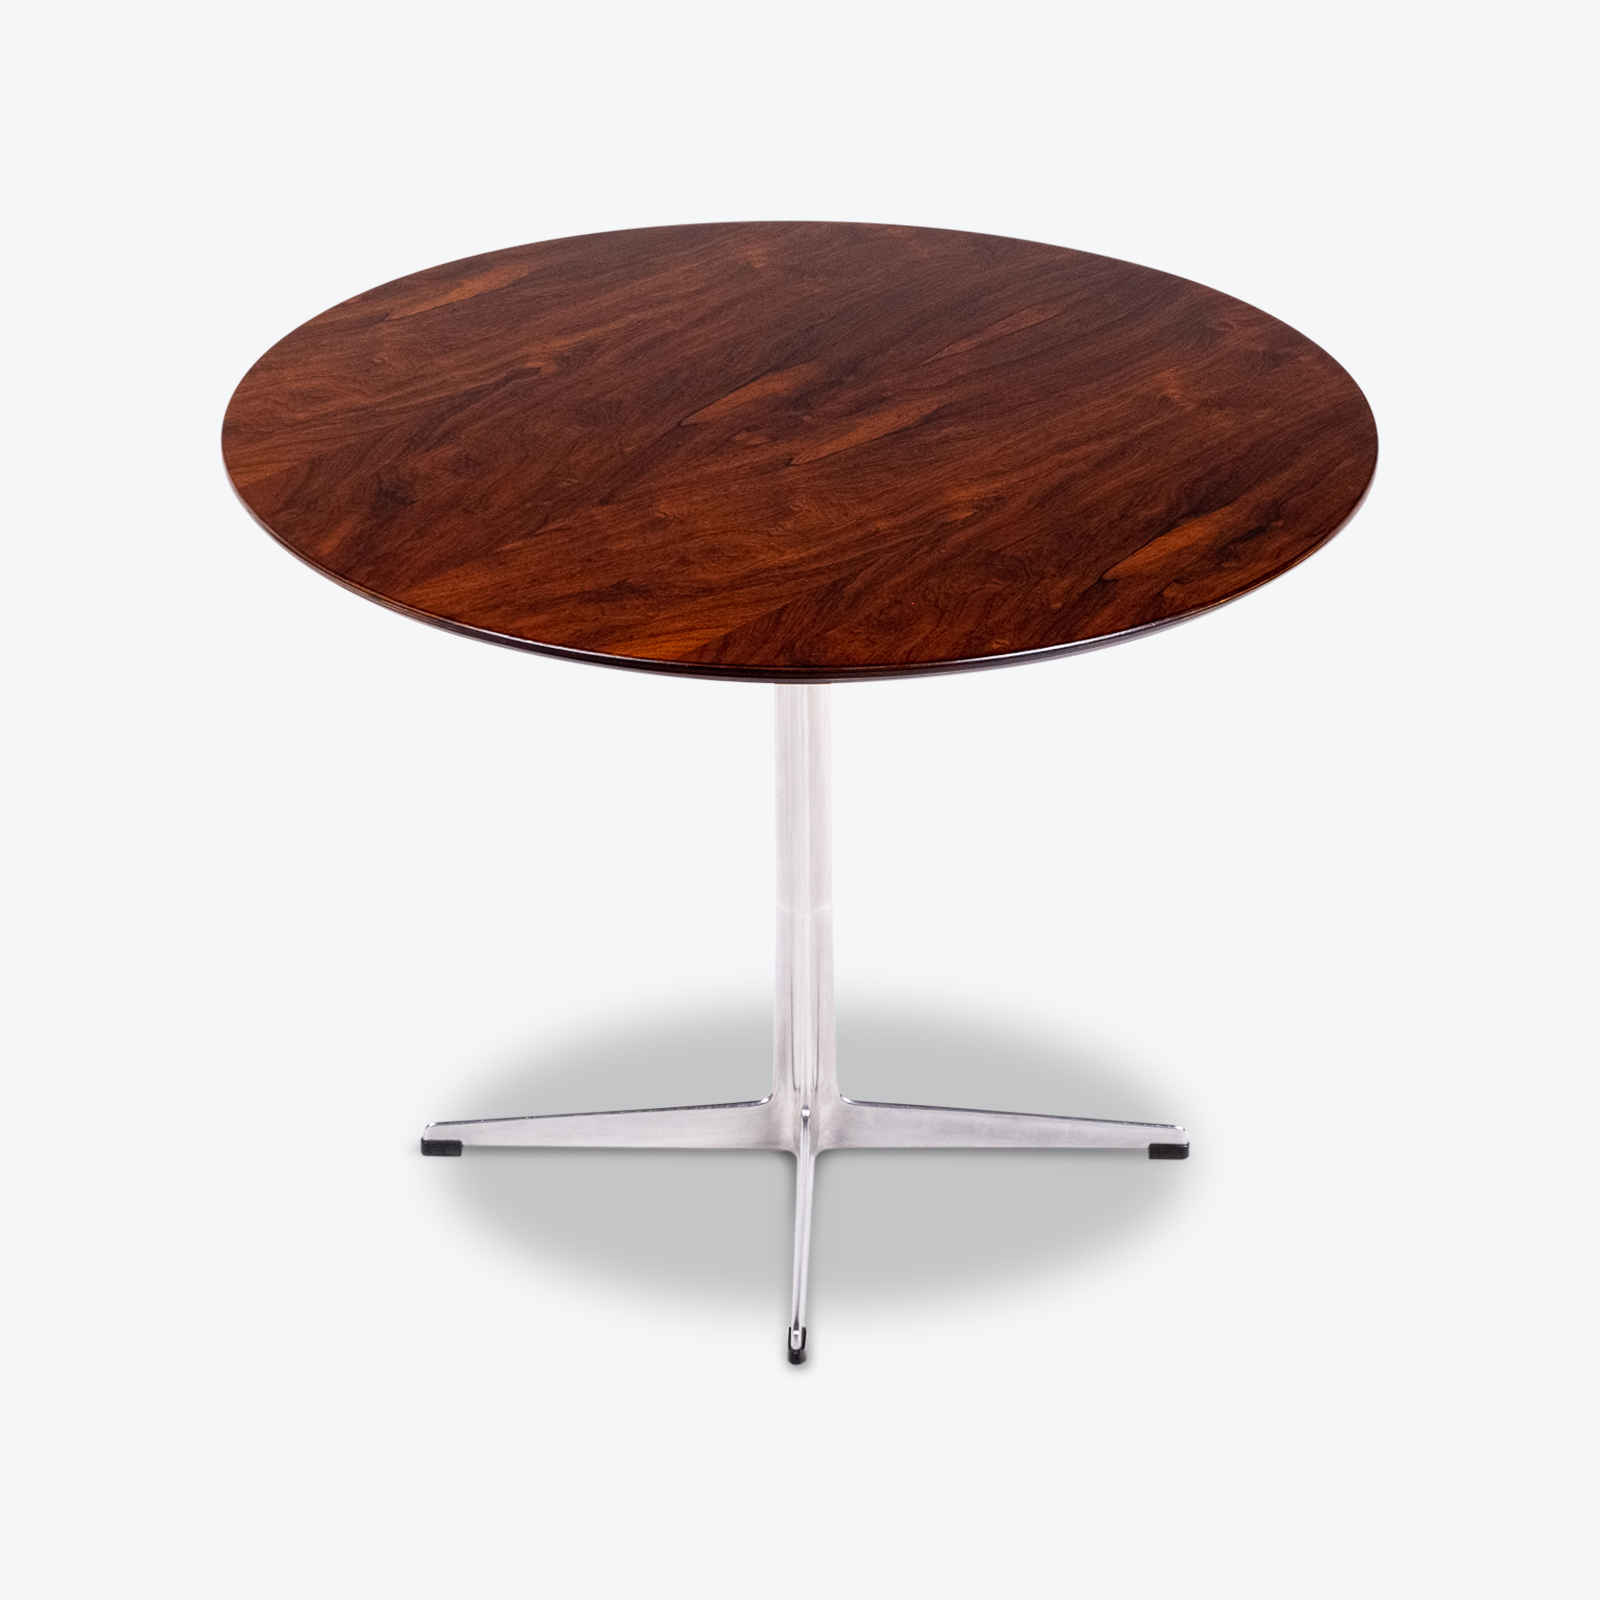 Cafe Table By Arne Jacobsen With Rosewood Top And Steel Pedestal Base, 1960s, Denmark Hero